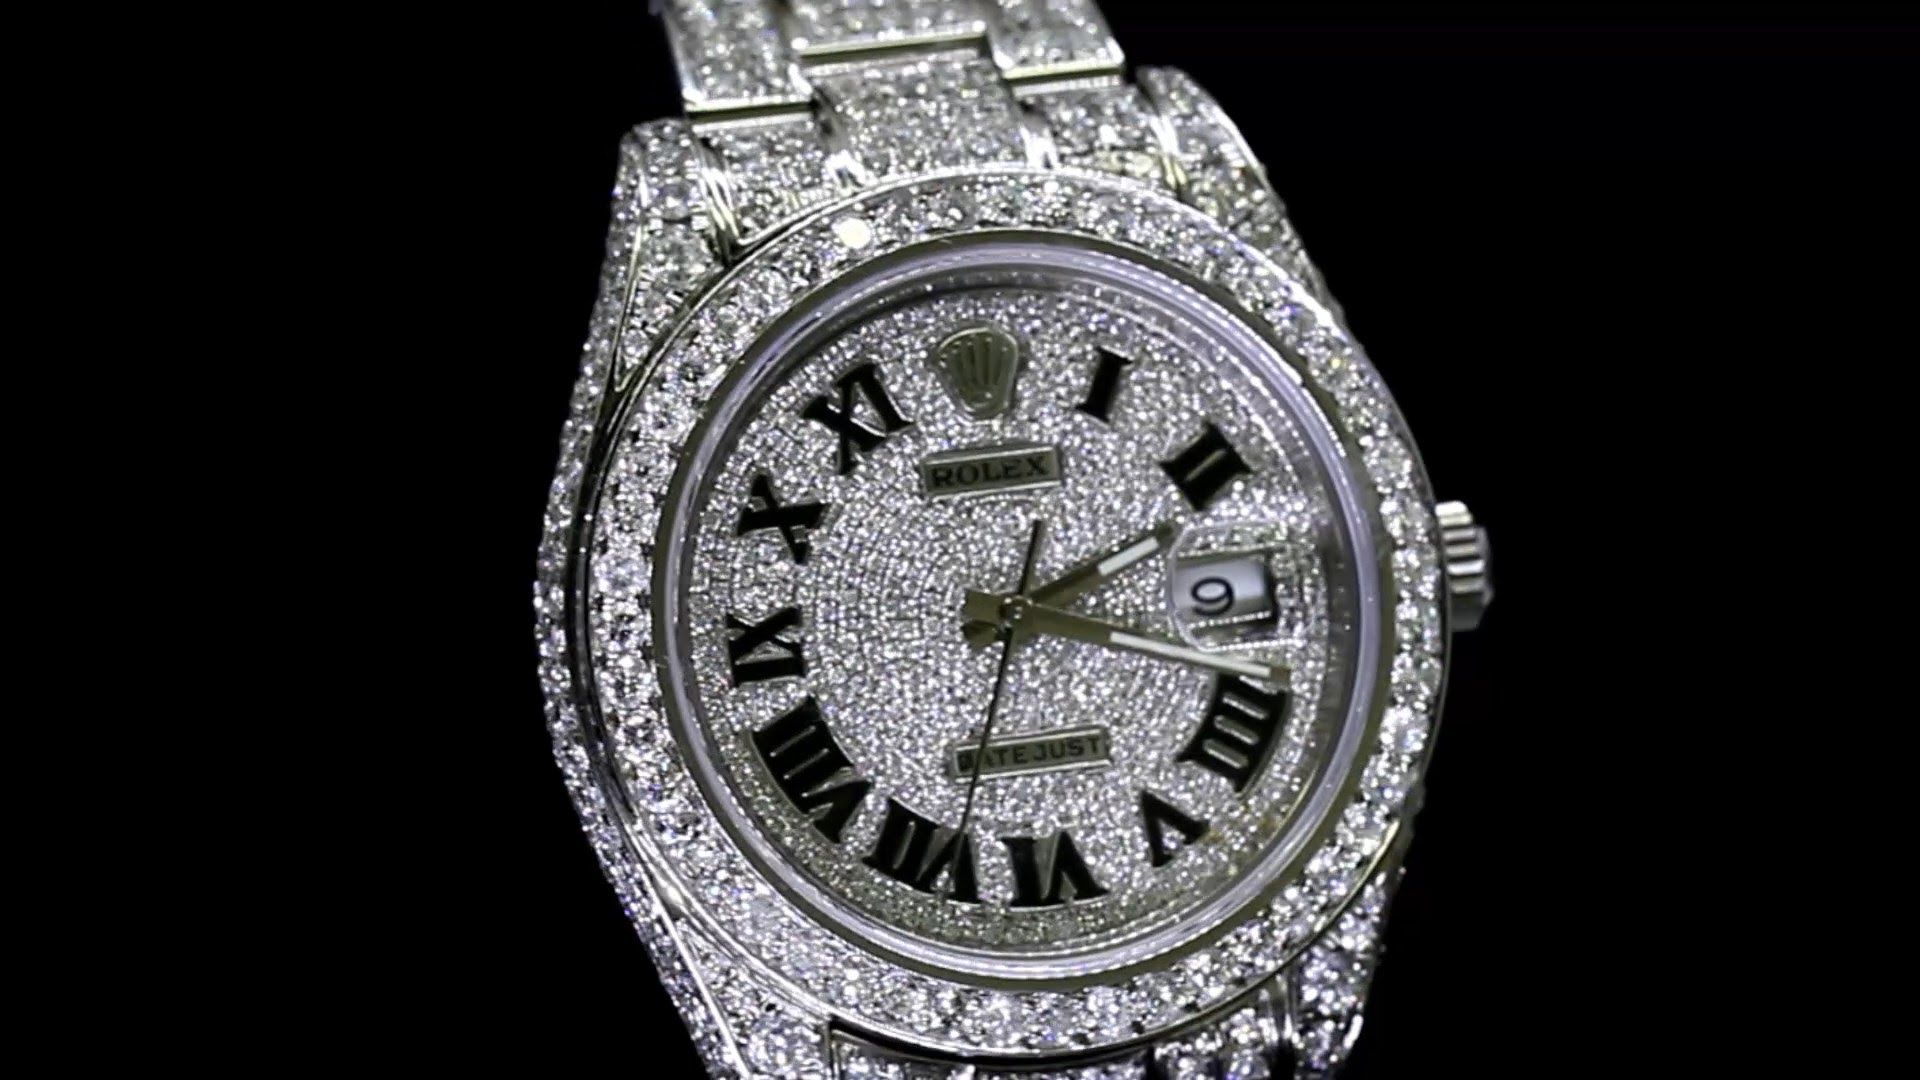 Rolex Iced Out Wallpapers Top Free Rolex Iced Out Backgrounds Wallpaperaccess